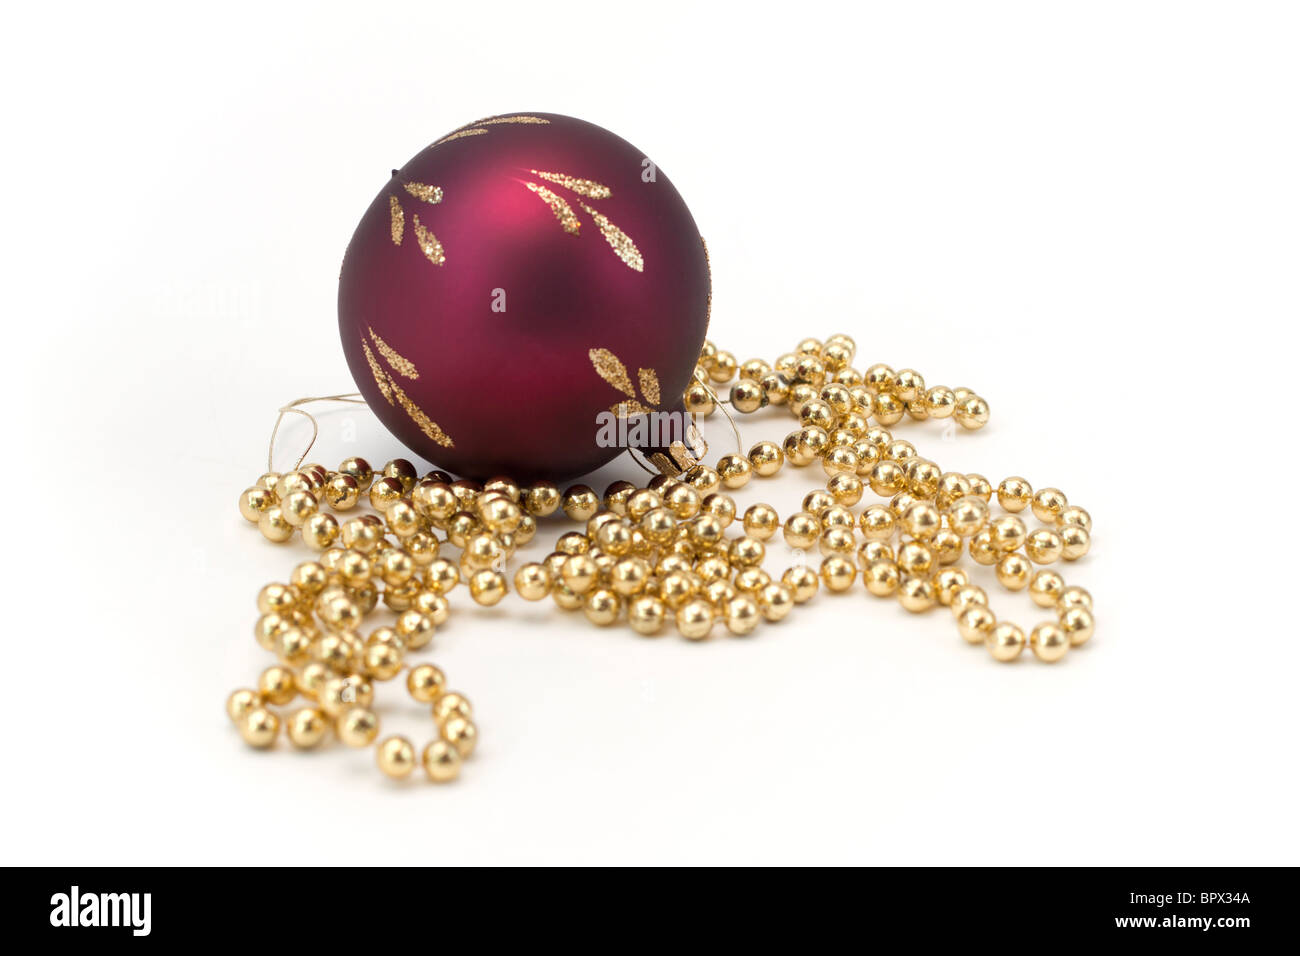 Christmas decorations, a red glass ball and a string of gold beads. Stock Photo